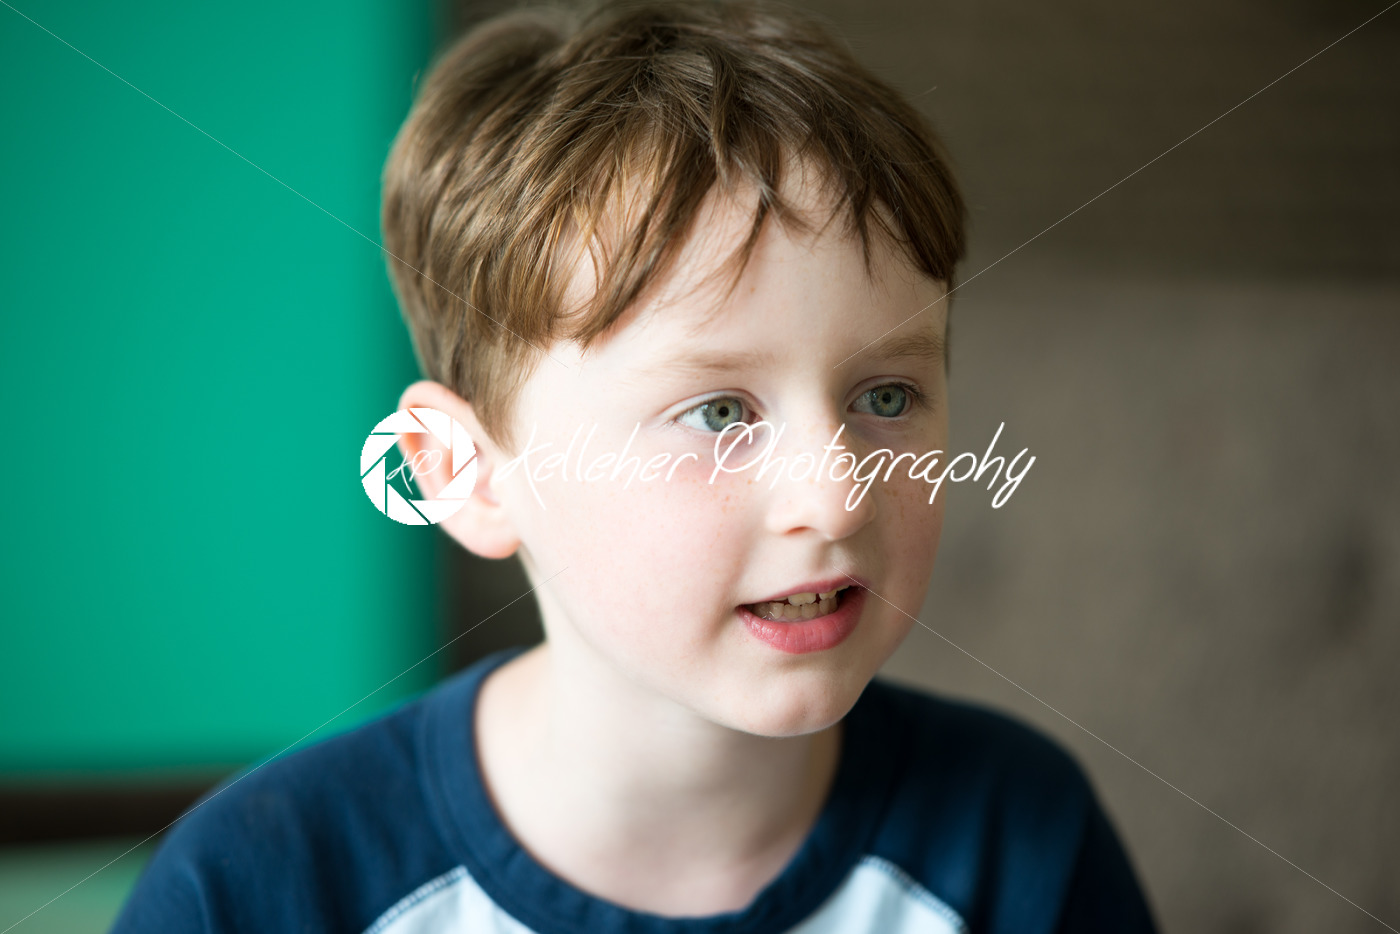 Close-up portrait of a cute boy with blue eyes - Kelleher Photography Store